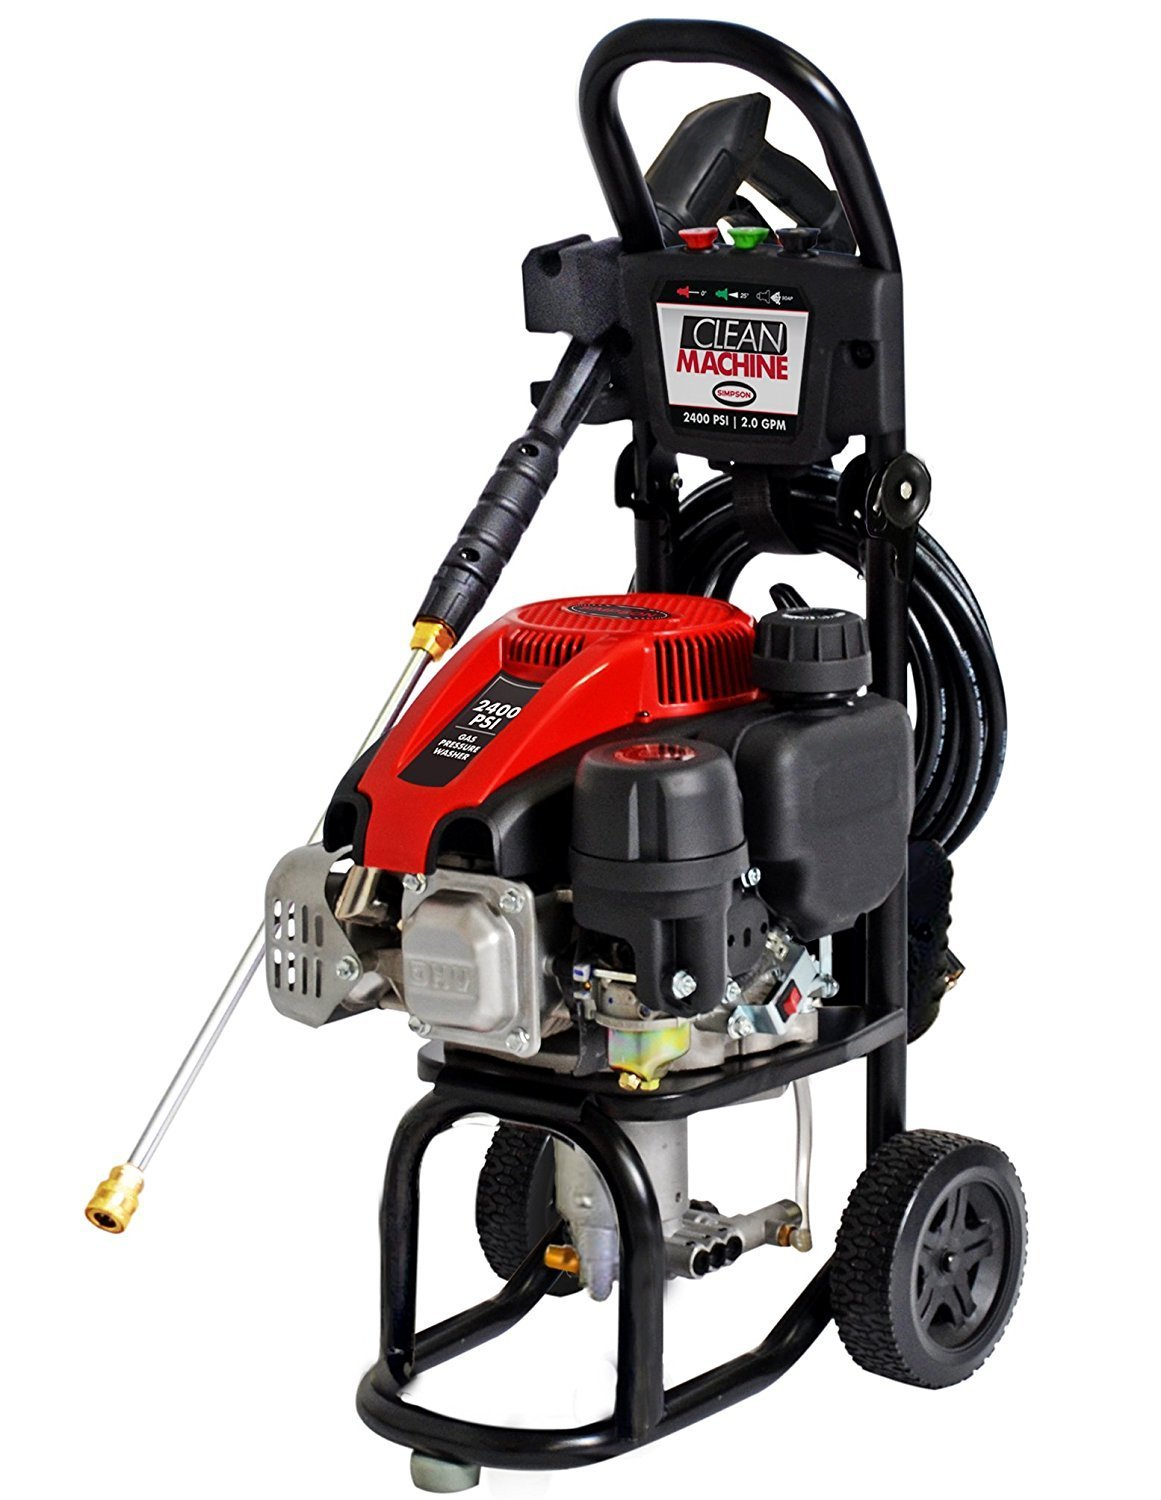 Car Wash Clean Machine by Simpson 60972 2400 PSI at 2.0 GPM Pressure Washer